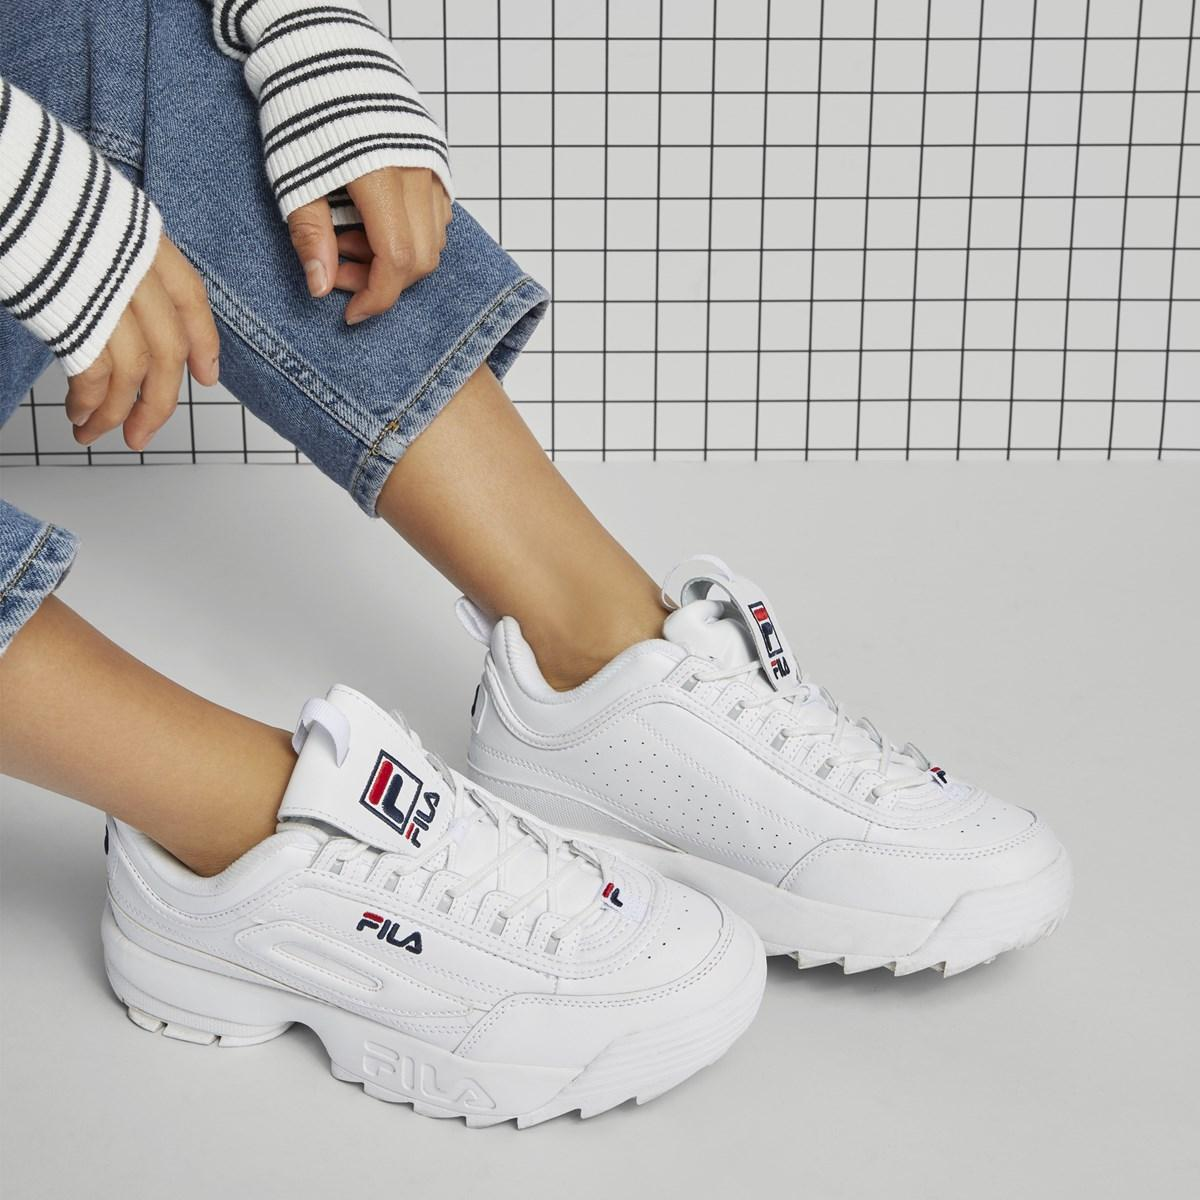 Fila Philippines  Fila price list - Sneakers   Running Shoes for ... 2fa4d4db4b